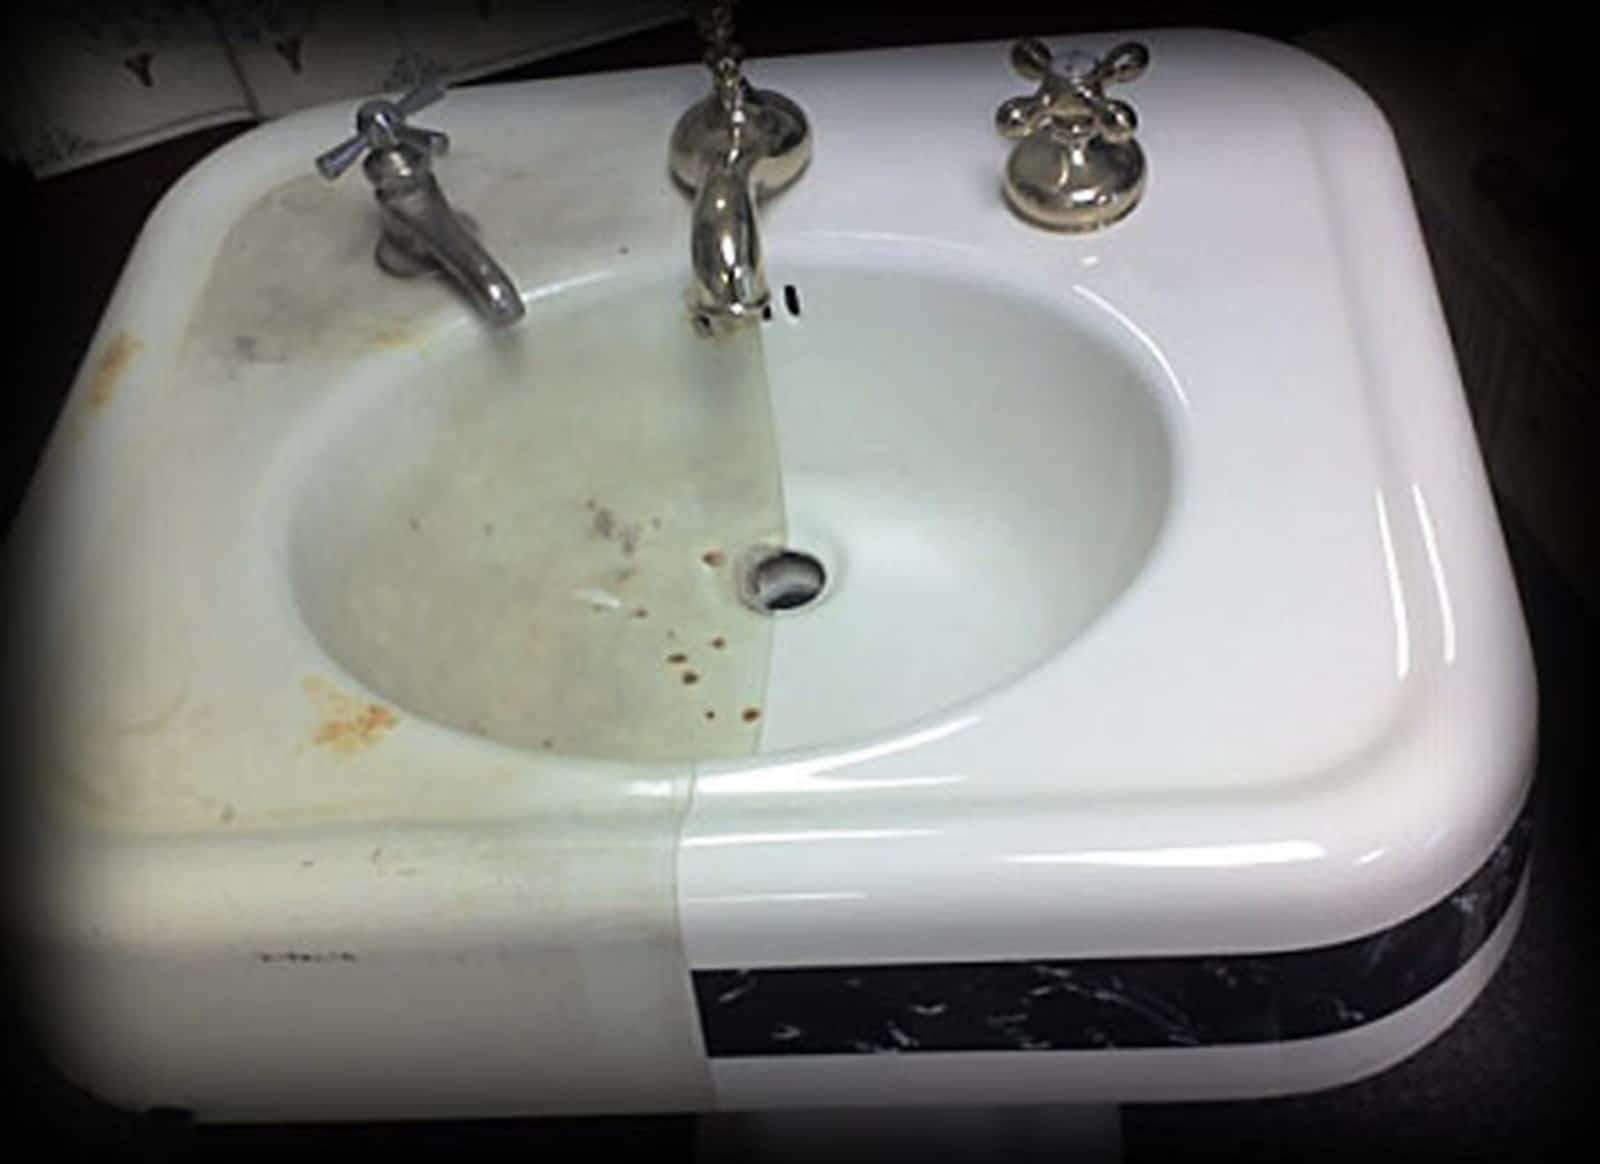 Special-T Bathtub Restoration - Opening Hours - 690 Beaconsfield ...